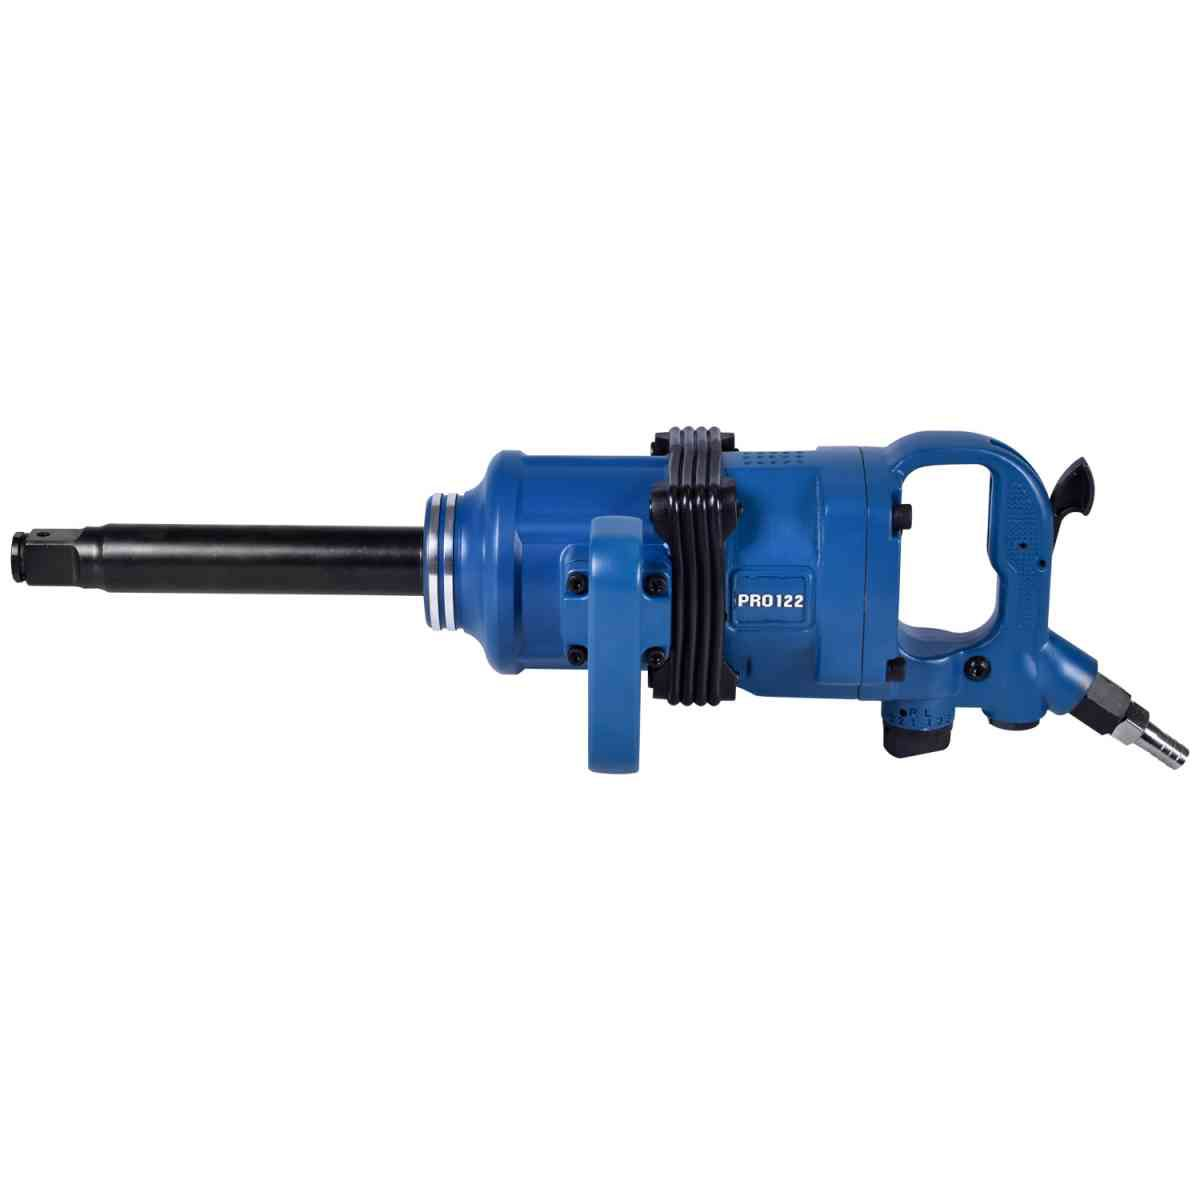 "CHAVE IMPACTO PNEU 1"" 220KG  PIN-LESS HAMMER PRO-122 PDR PRO"